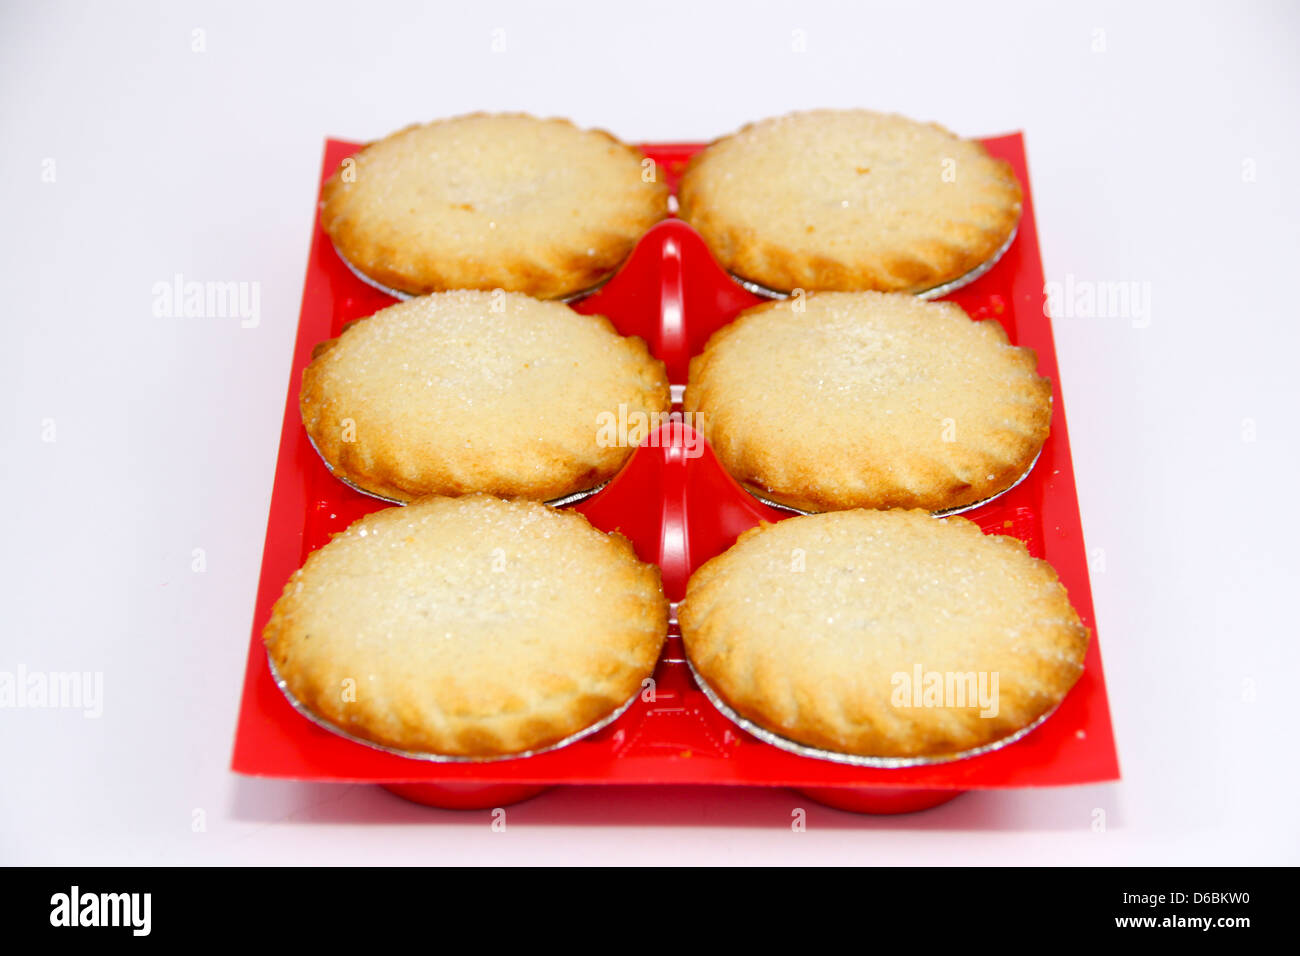 Shop bought individual apple pies in plastic tray - Stock Image